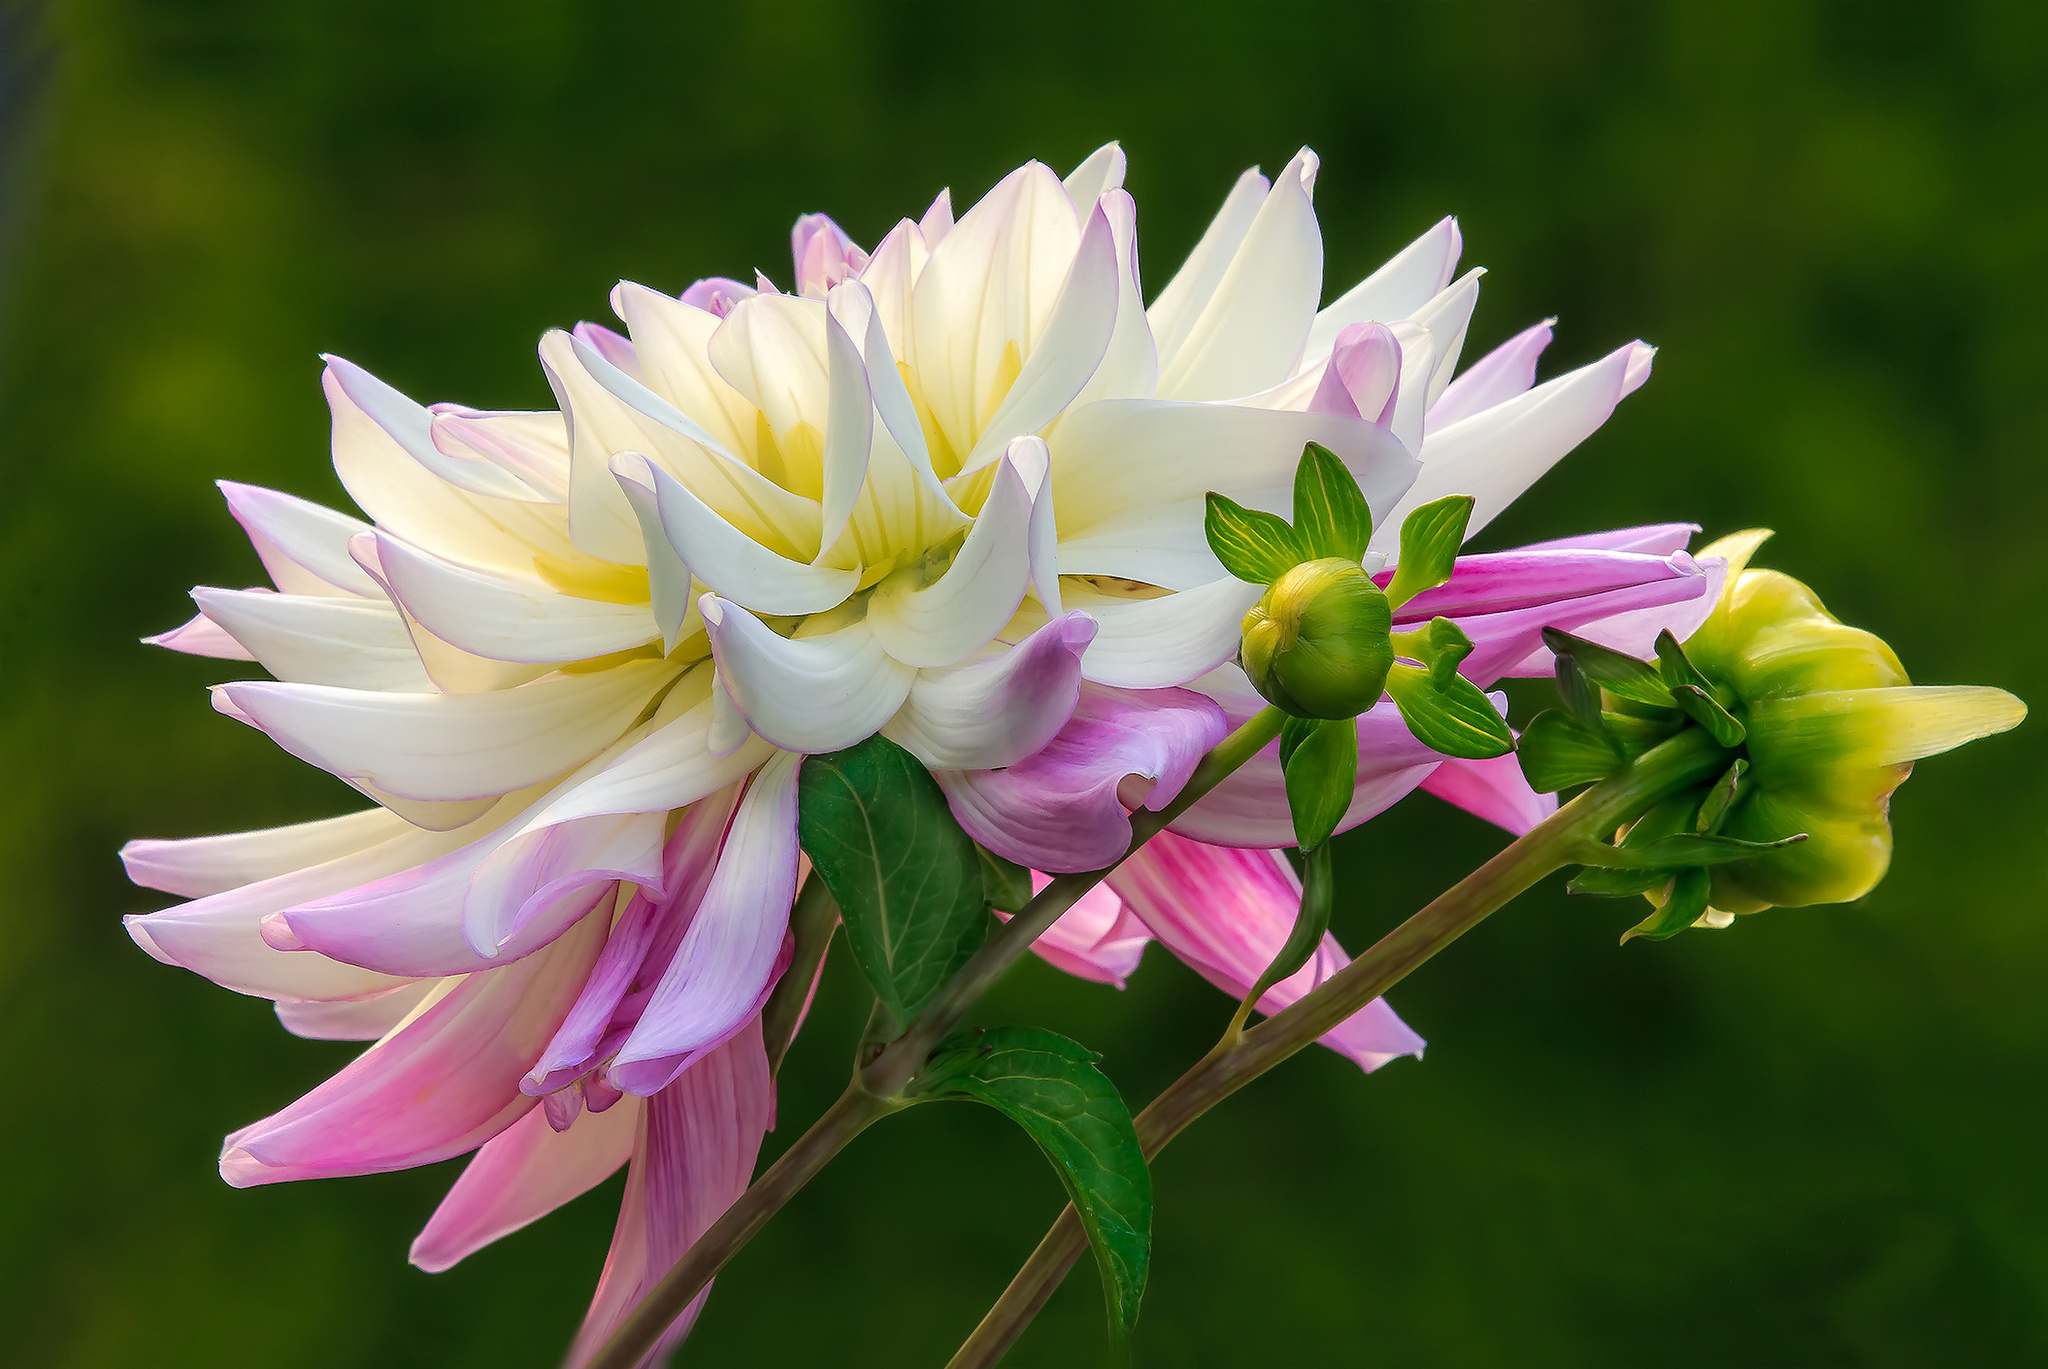 Flower buds white and pink dahlia wallpaper | 2048x1369 ...